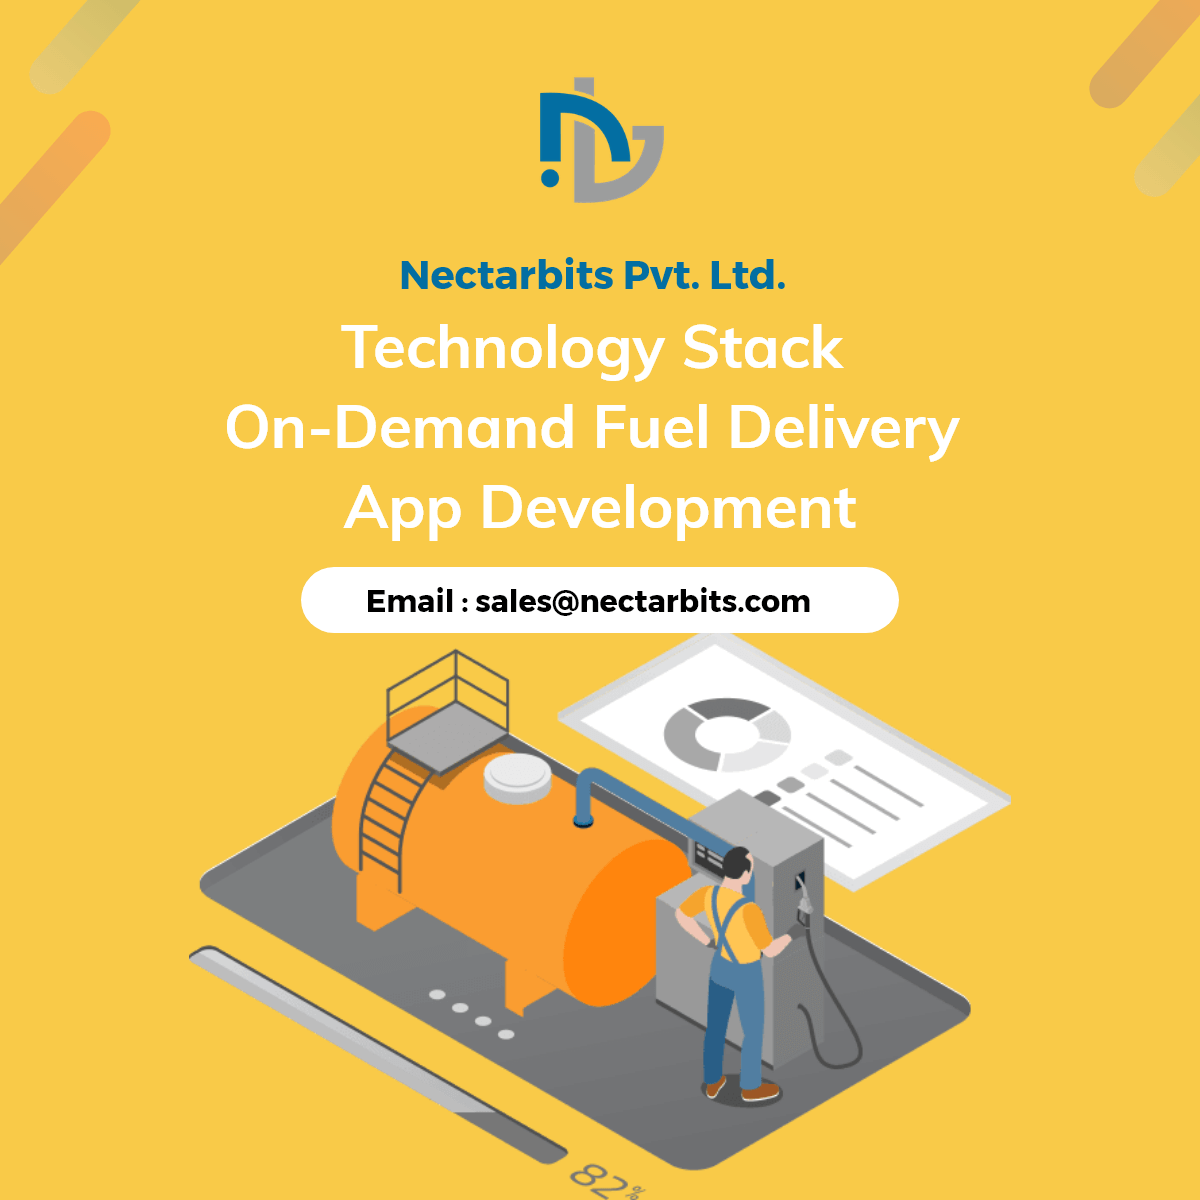 The Best Tech Stack For On-Demand Fuel Delivery App Development - Nectarbits